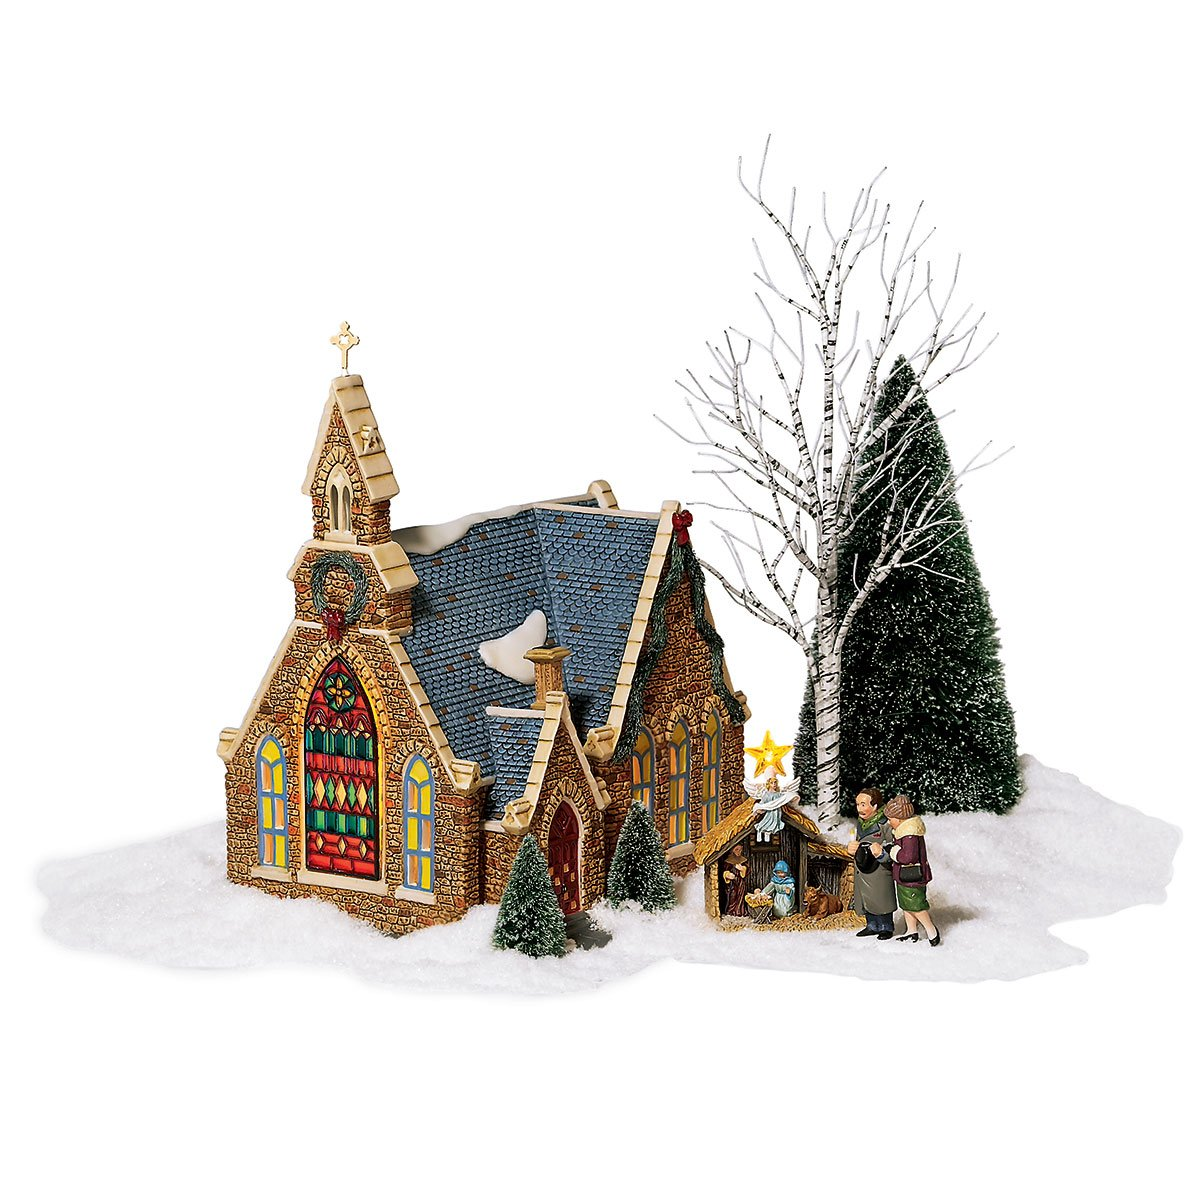 Dept 56 Holiday Gift Set Church of the Holy Light from Christmas in the City Series Department 56 56.59206